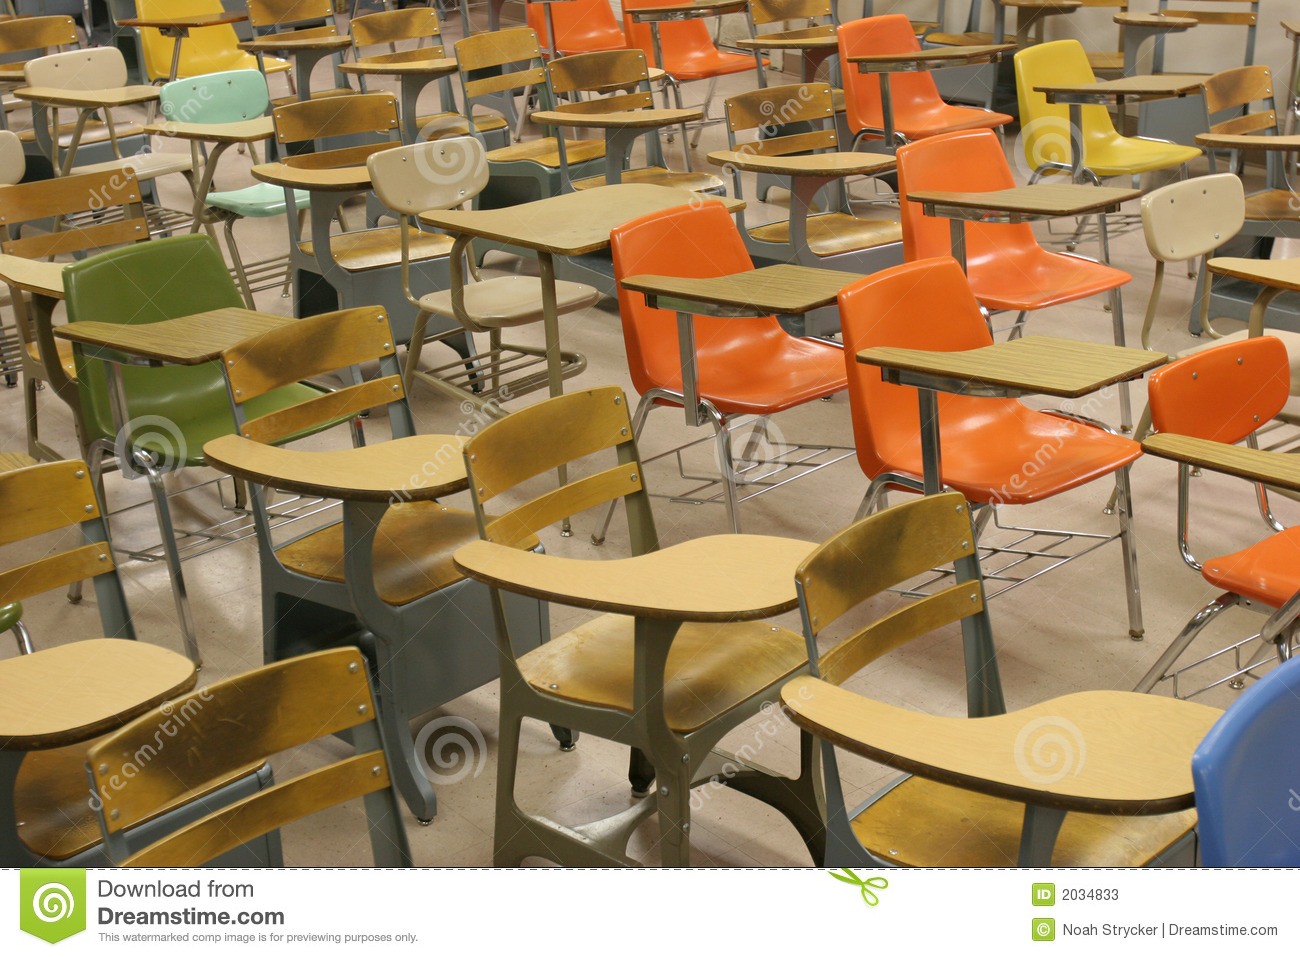 colorful old school desks in a classroom